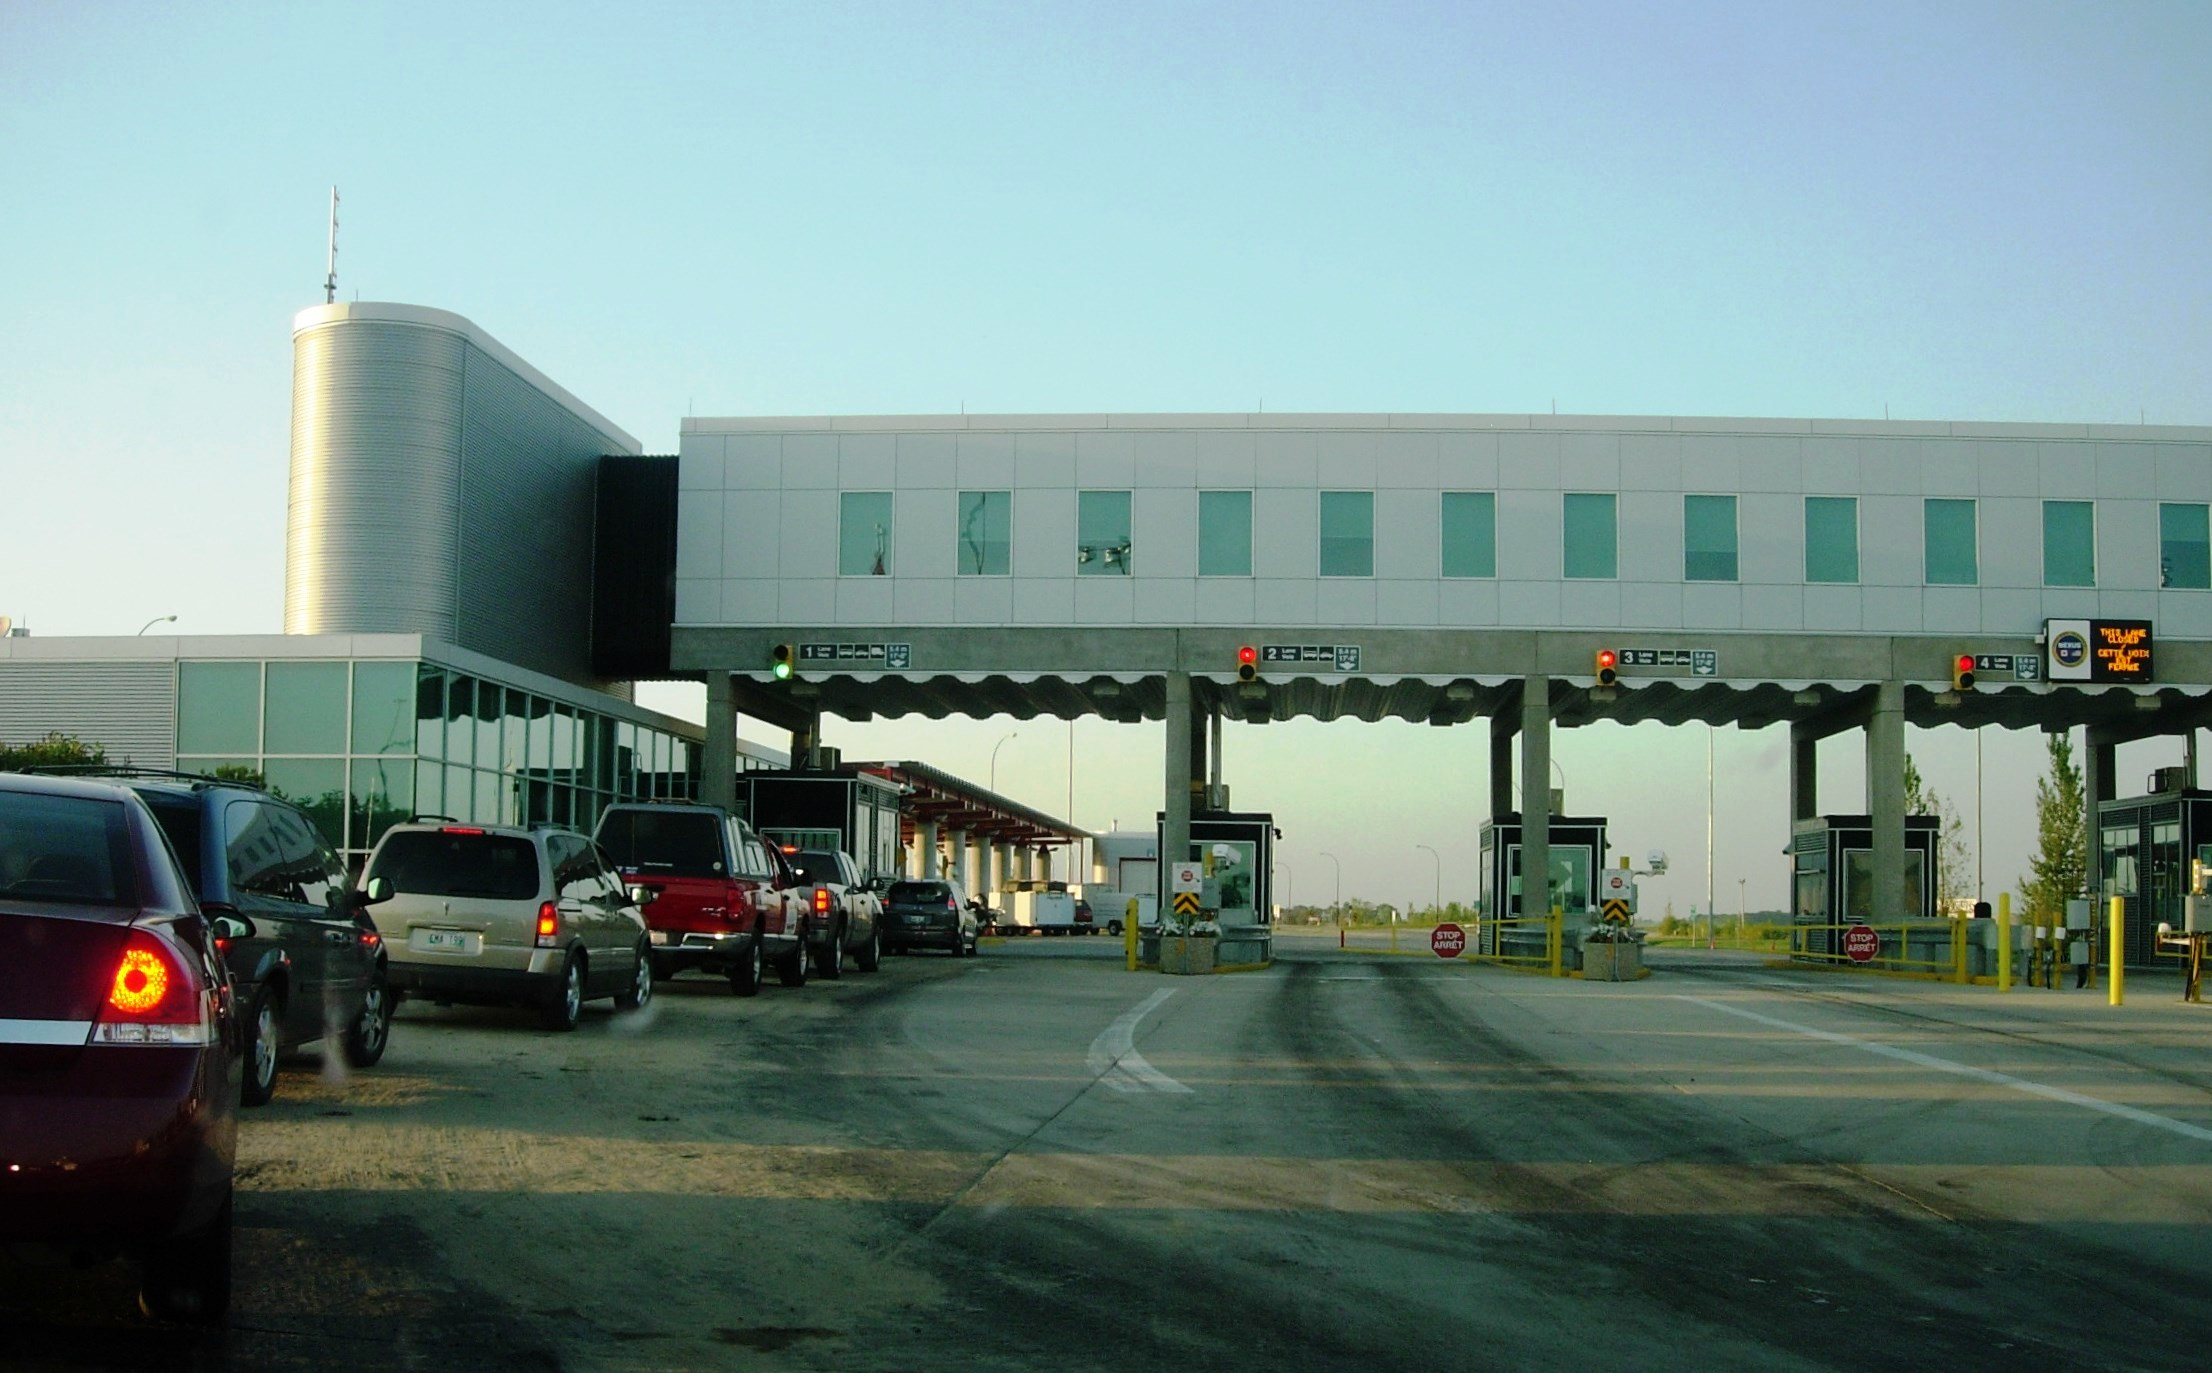 A Port Authority for Emerson border